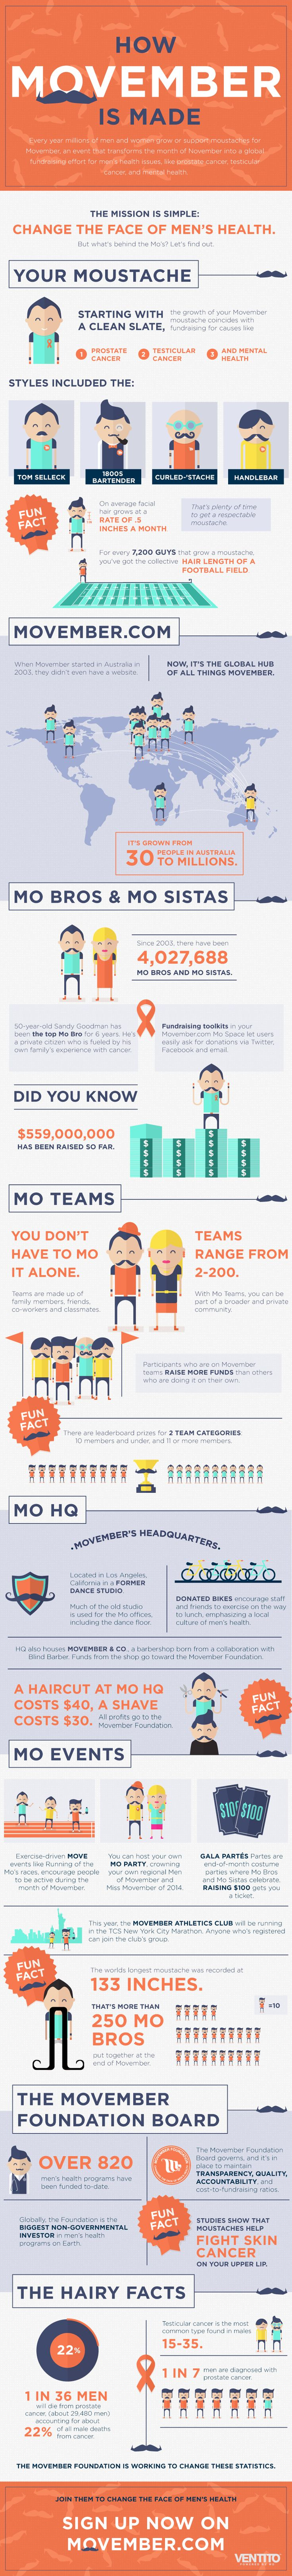 How Movember is Made #infographic #Movember #Cancer #Mustaches